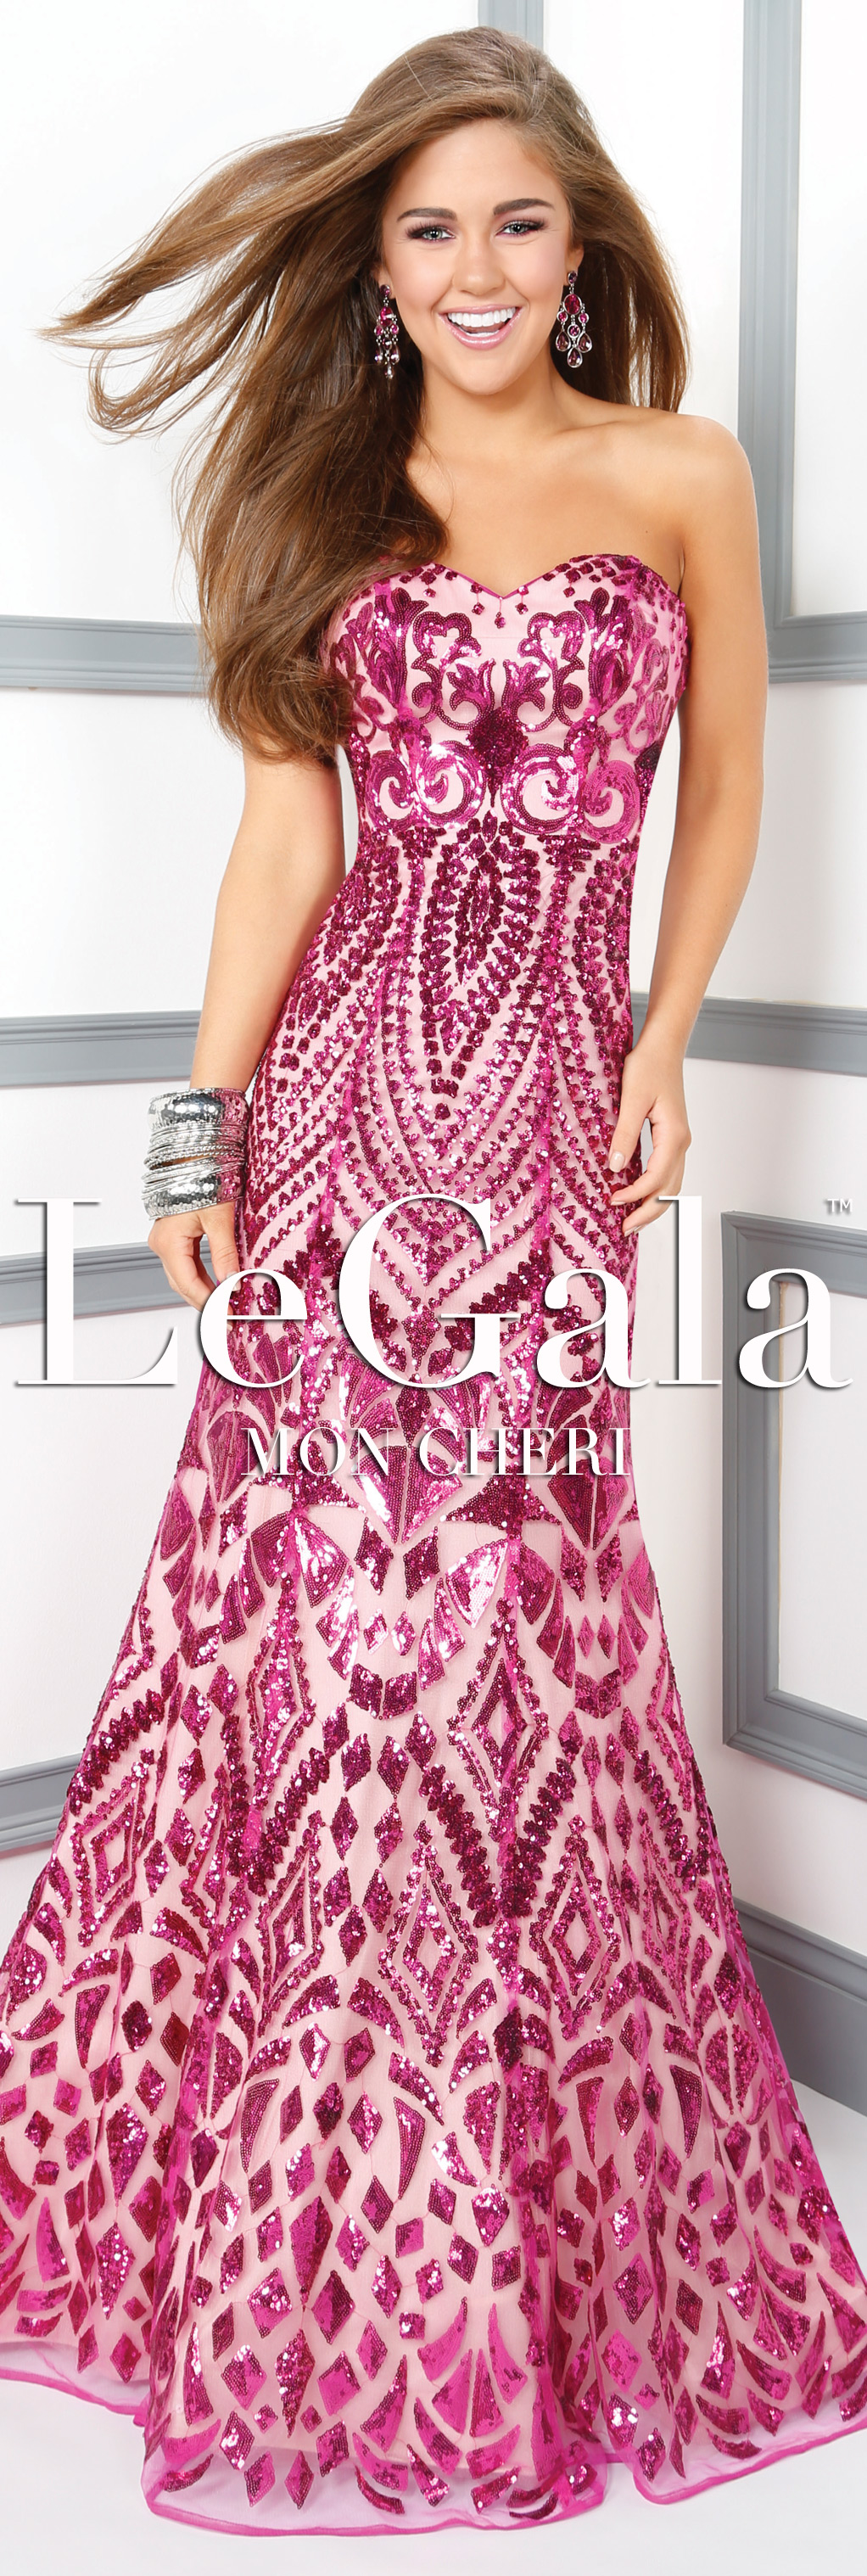 Spring 2016 Prom Dress by Le Gala by Mon Cheri style 116531 ...